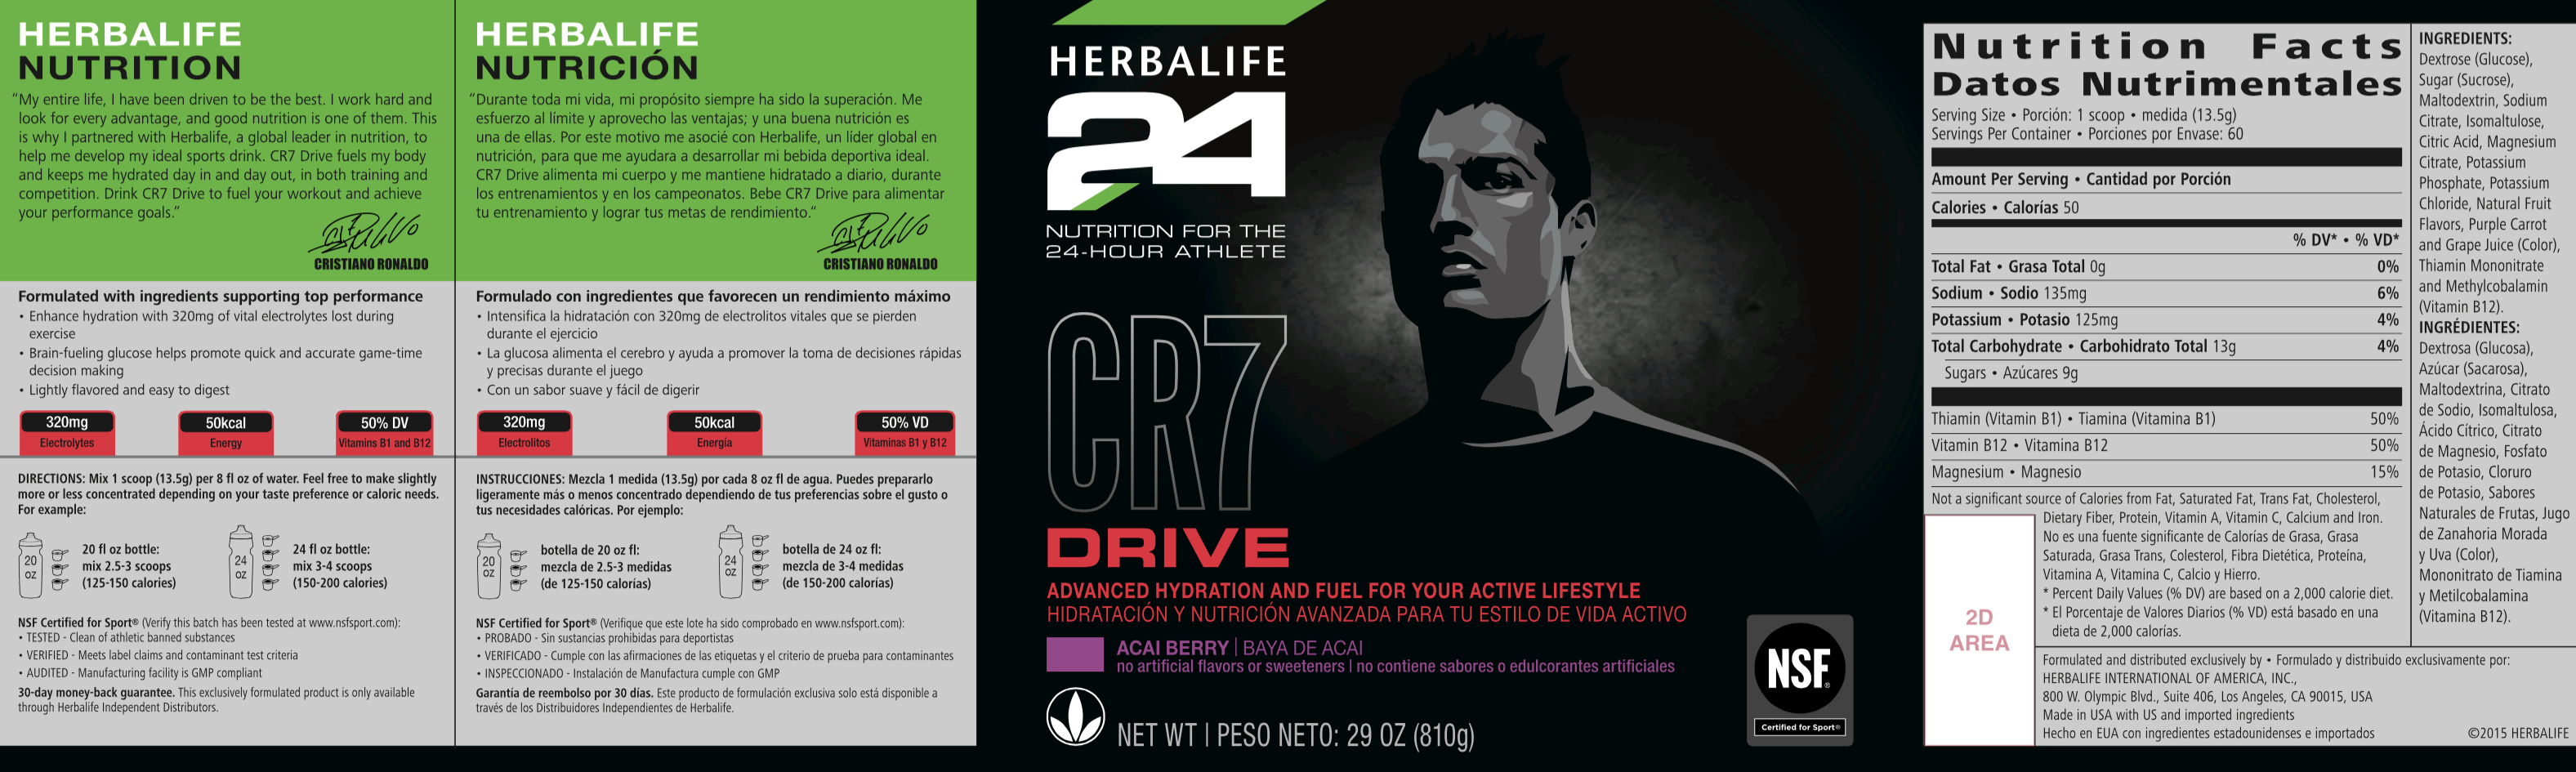 The Herbalife24 Family | Herbalife24